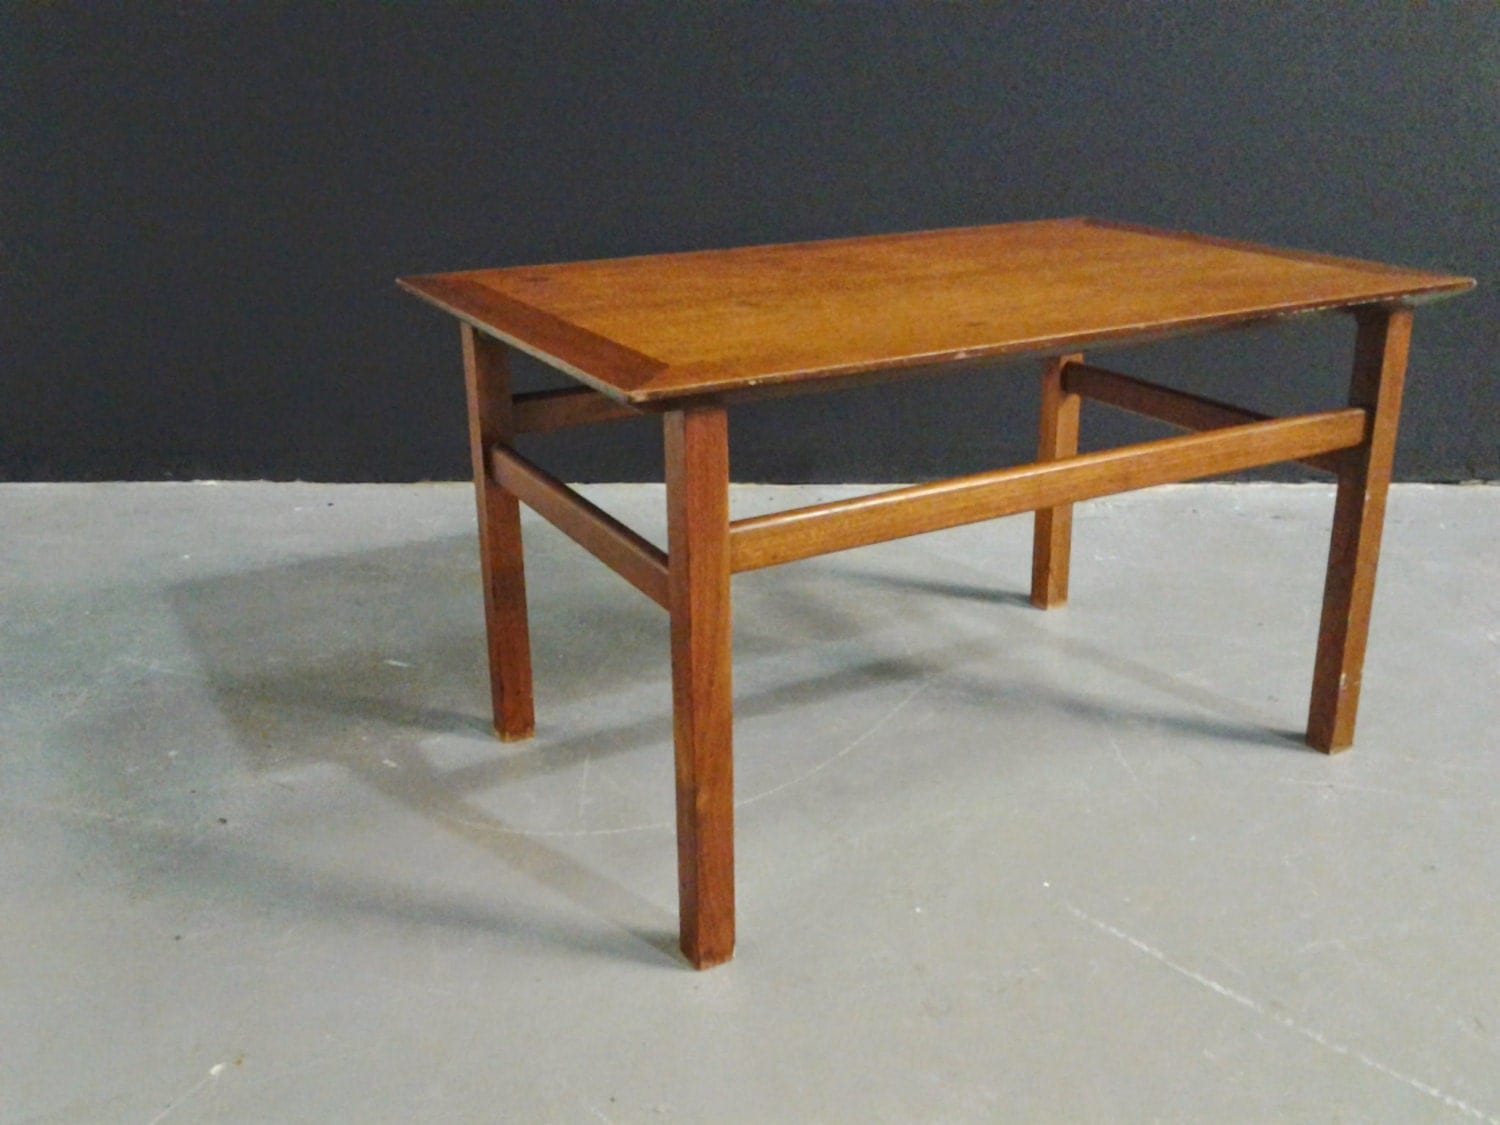 Vintage Midcentury Modern Small Coffee Table J B Van Sciver